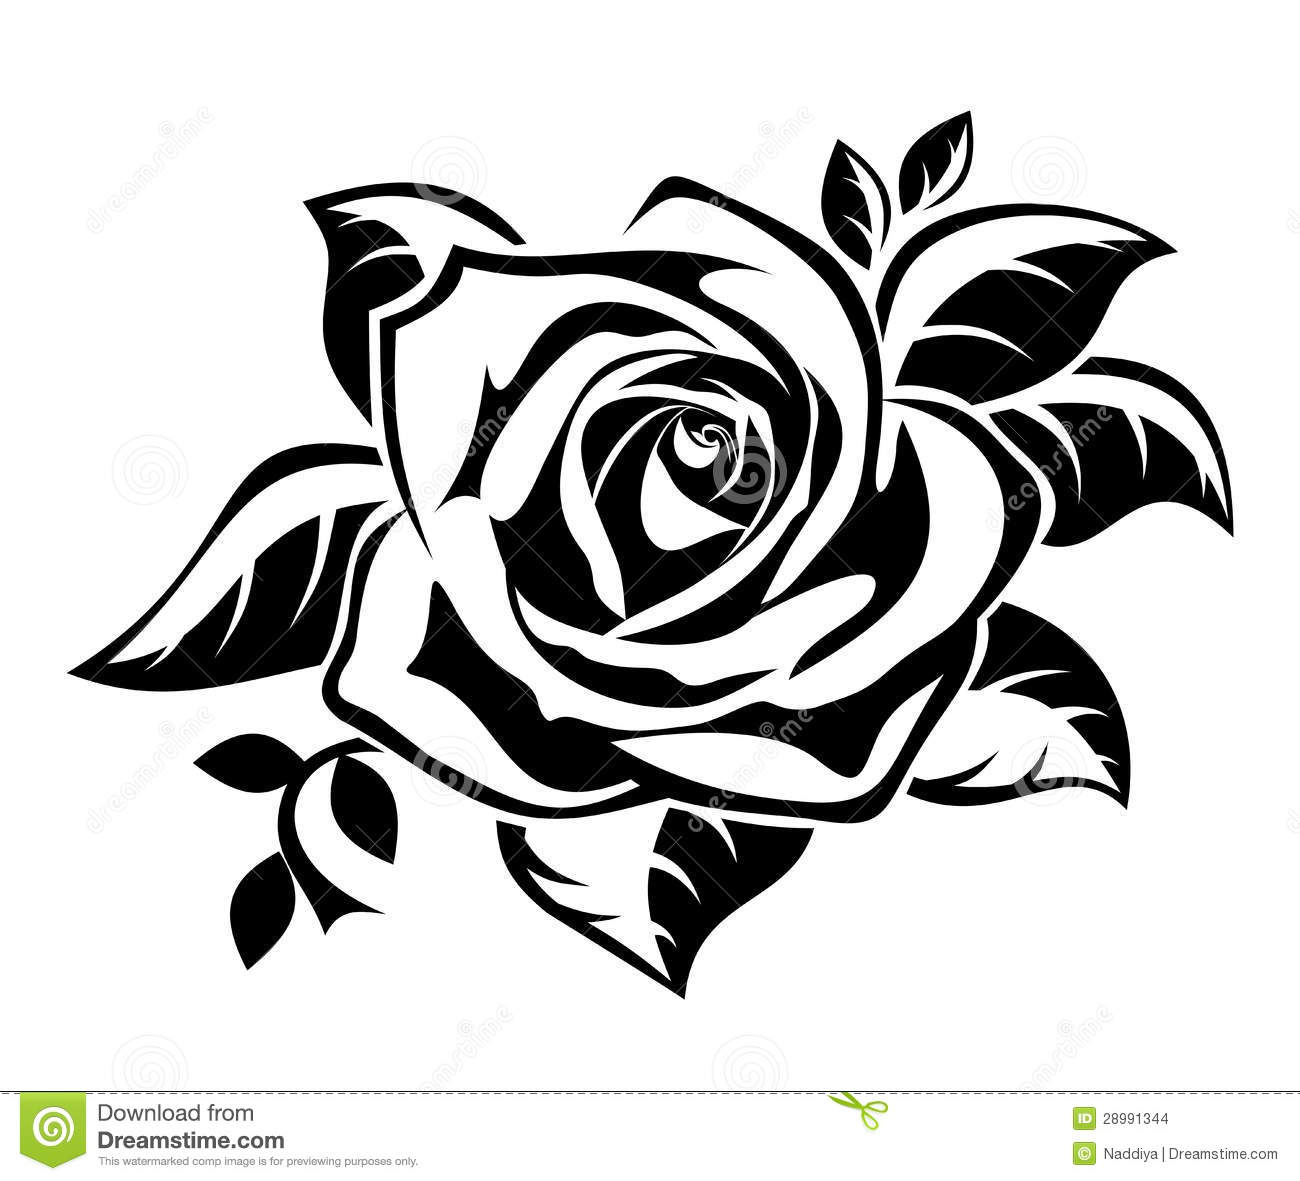 Rose and Rose collection Black